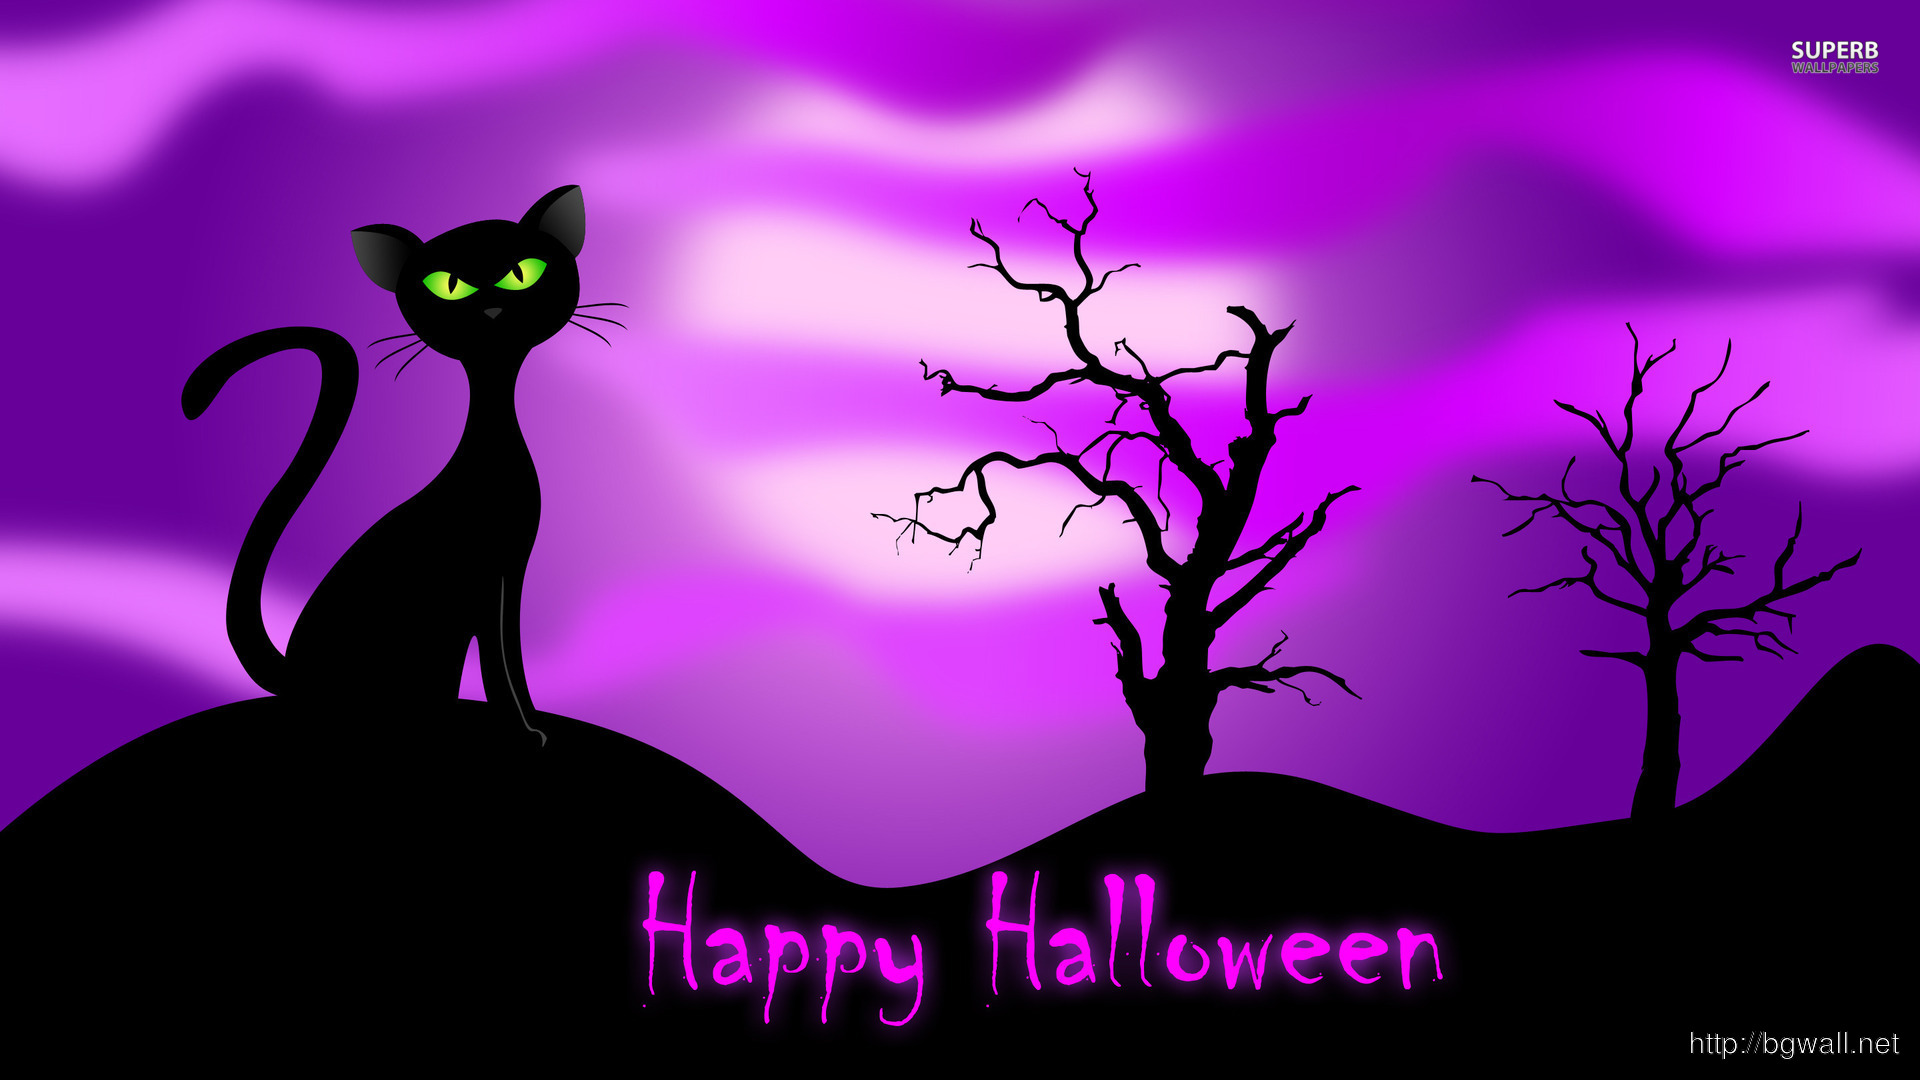 Happy Halloween Wallpaper Full Size